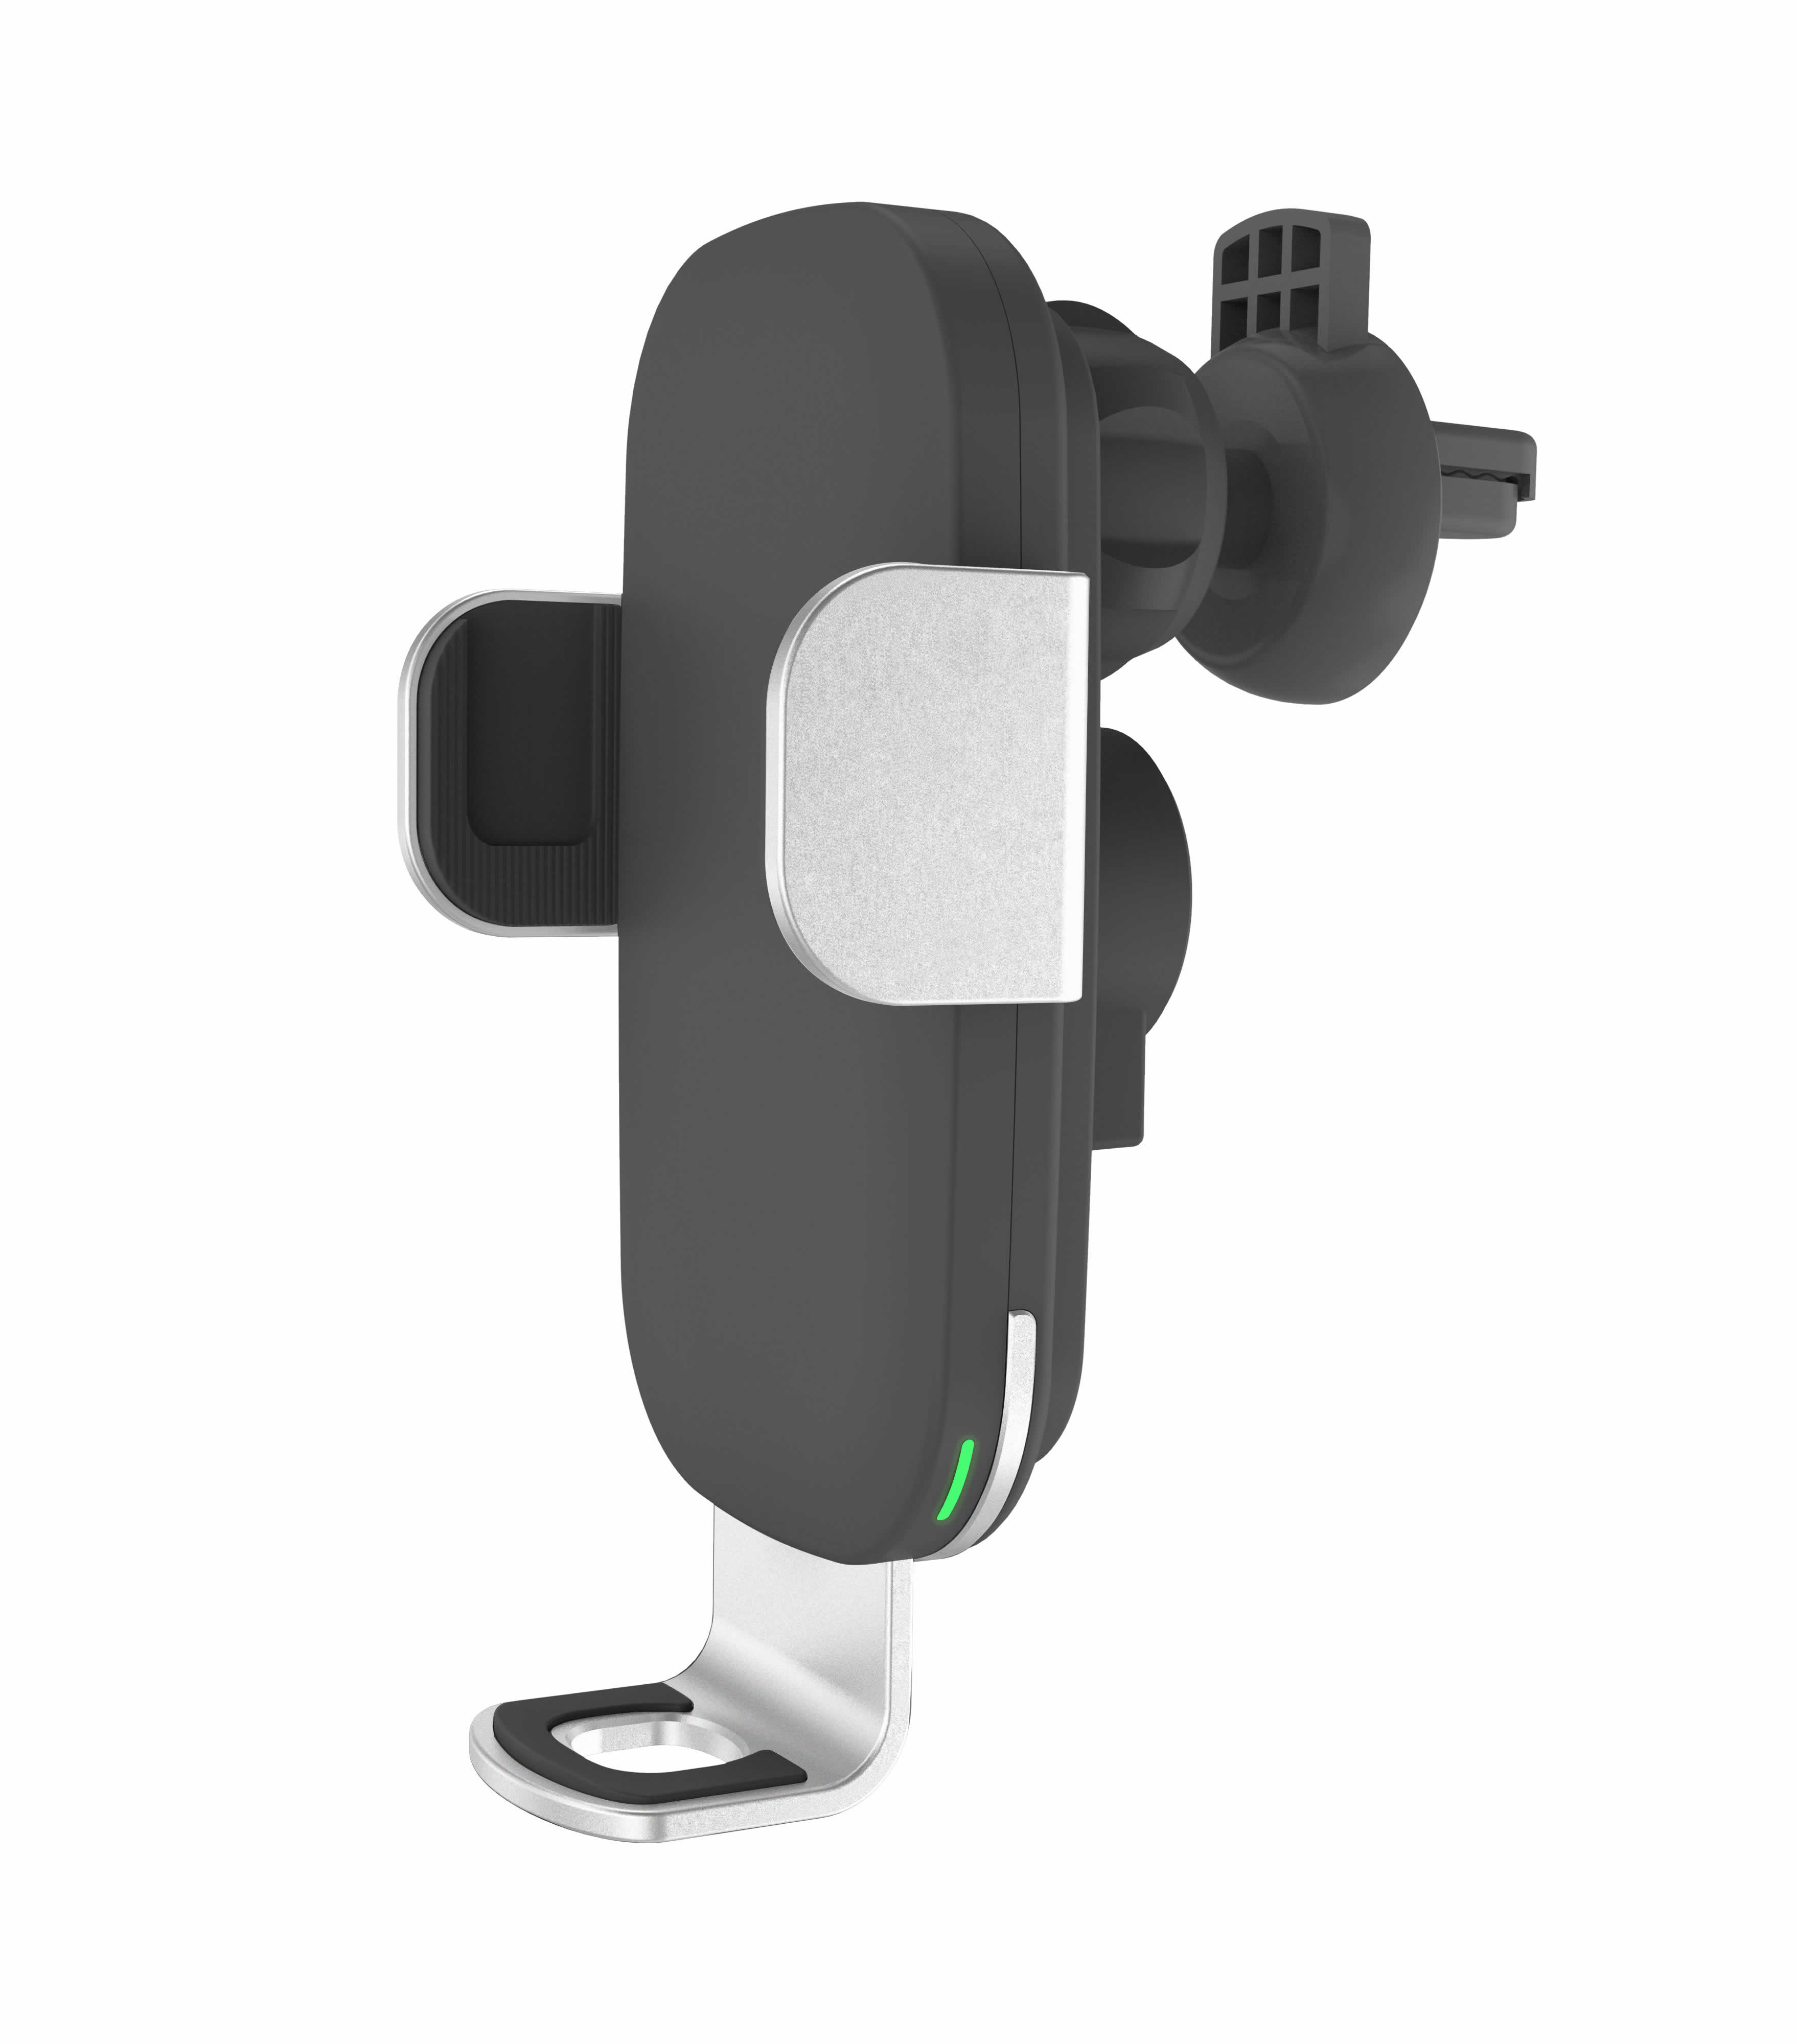 C50 Fast Car mount QI Wireless Charger